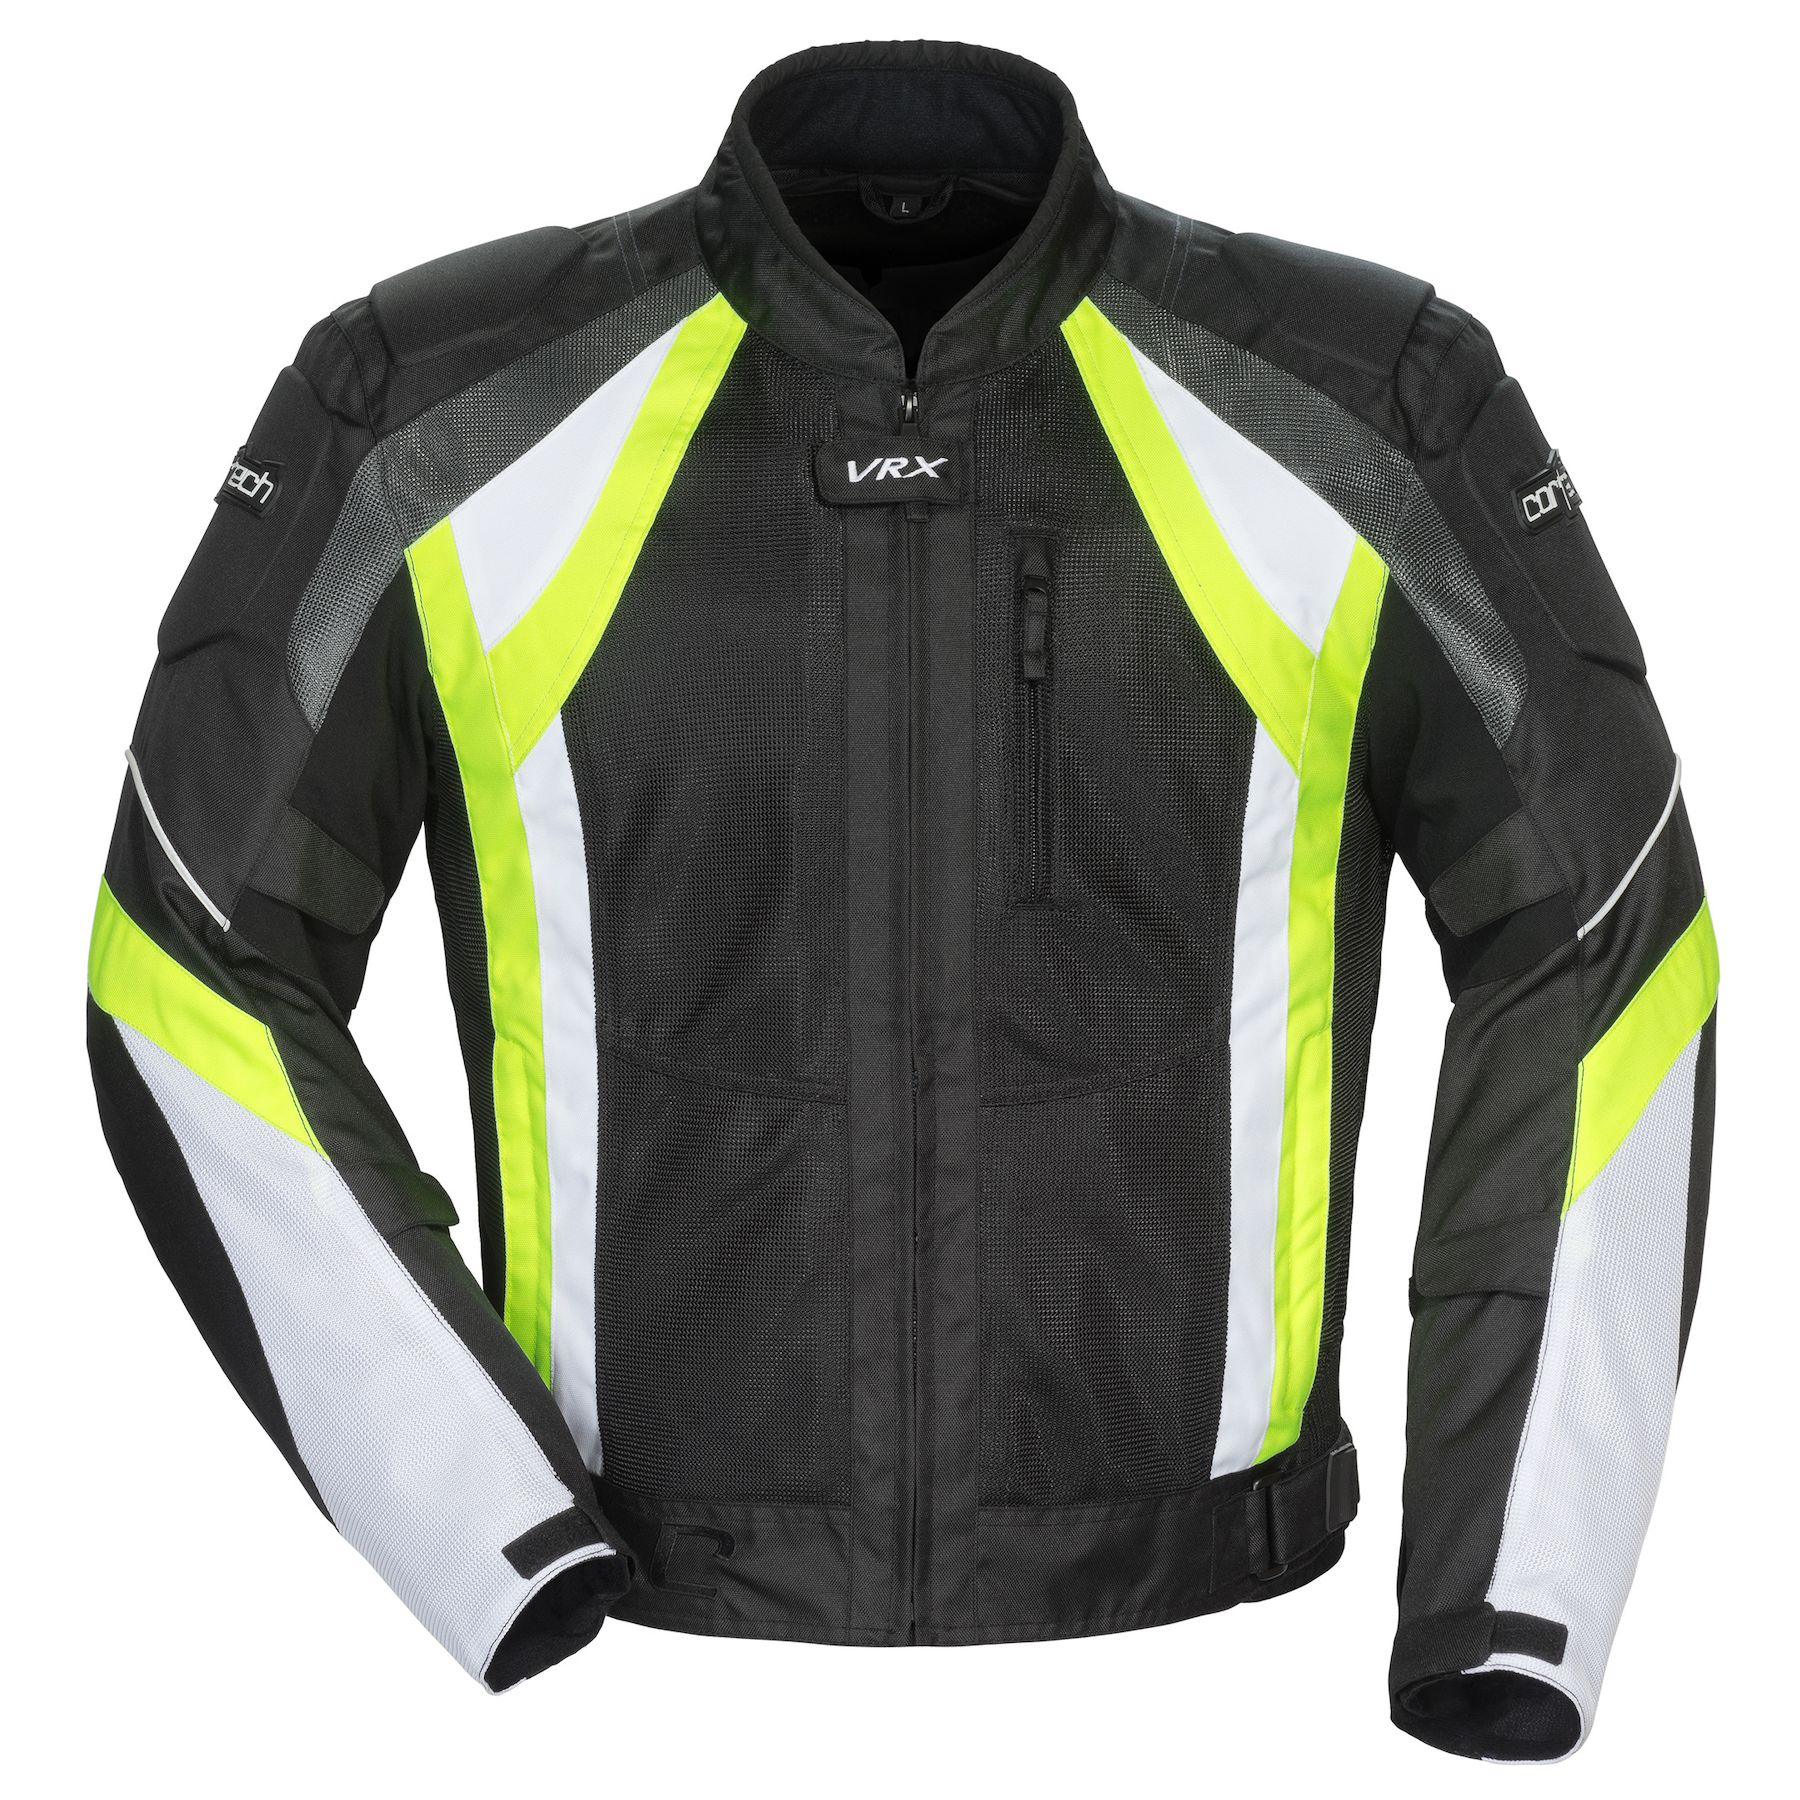 Cortech VRX Air 2.0 Motorcycle Jacket Waterproof Liner /& Armor Pick Size//Color